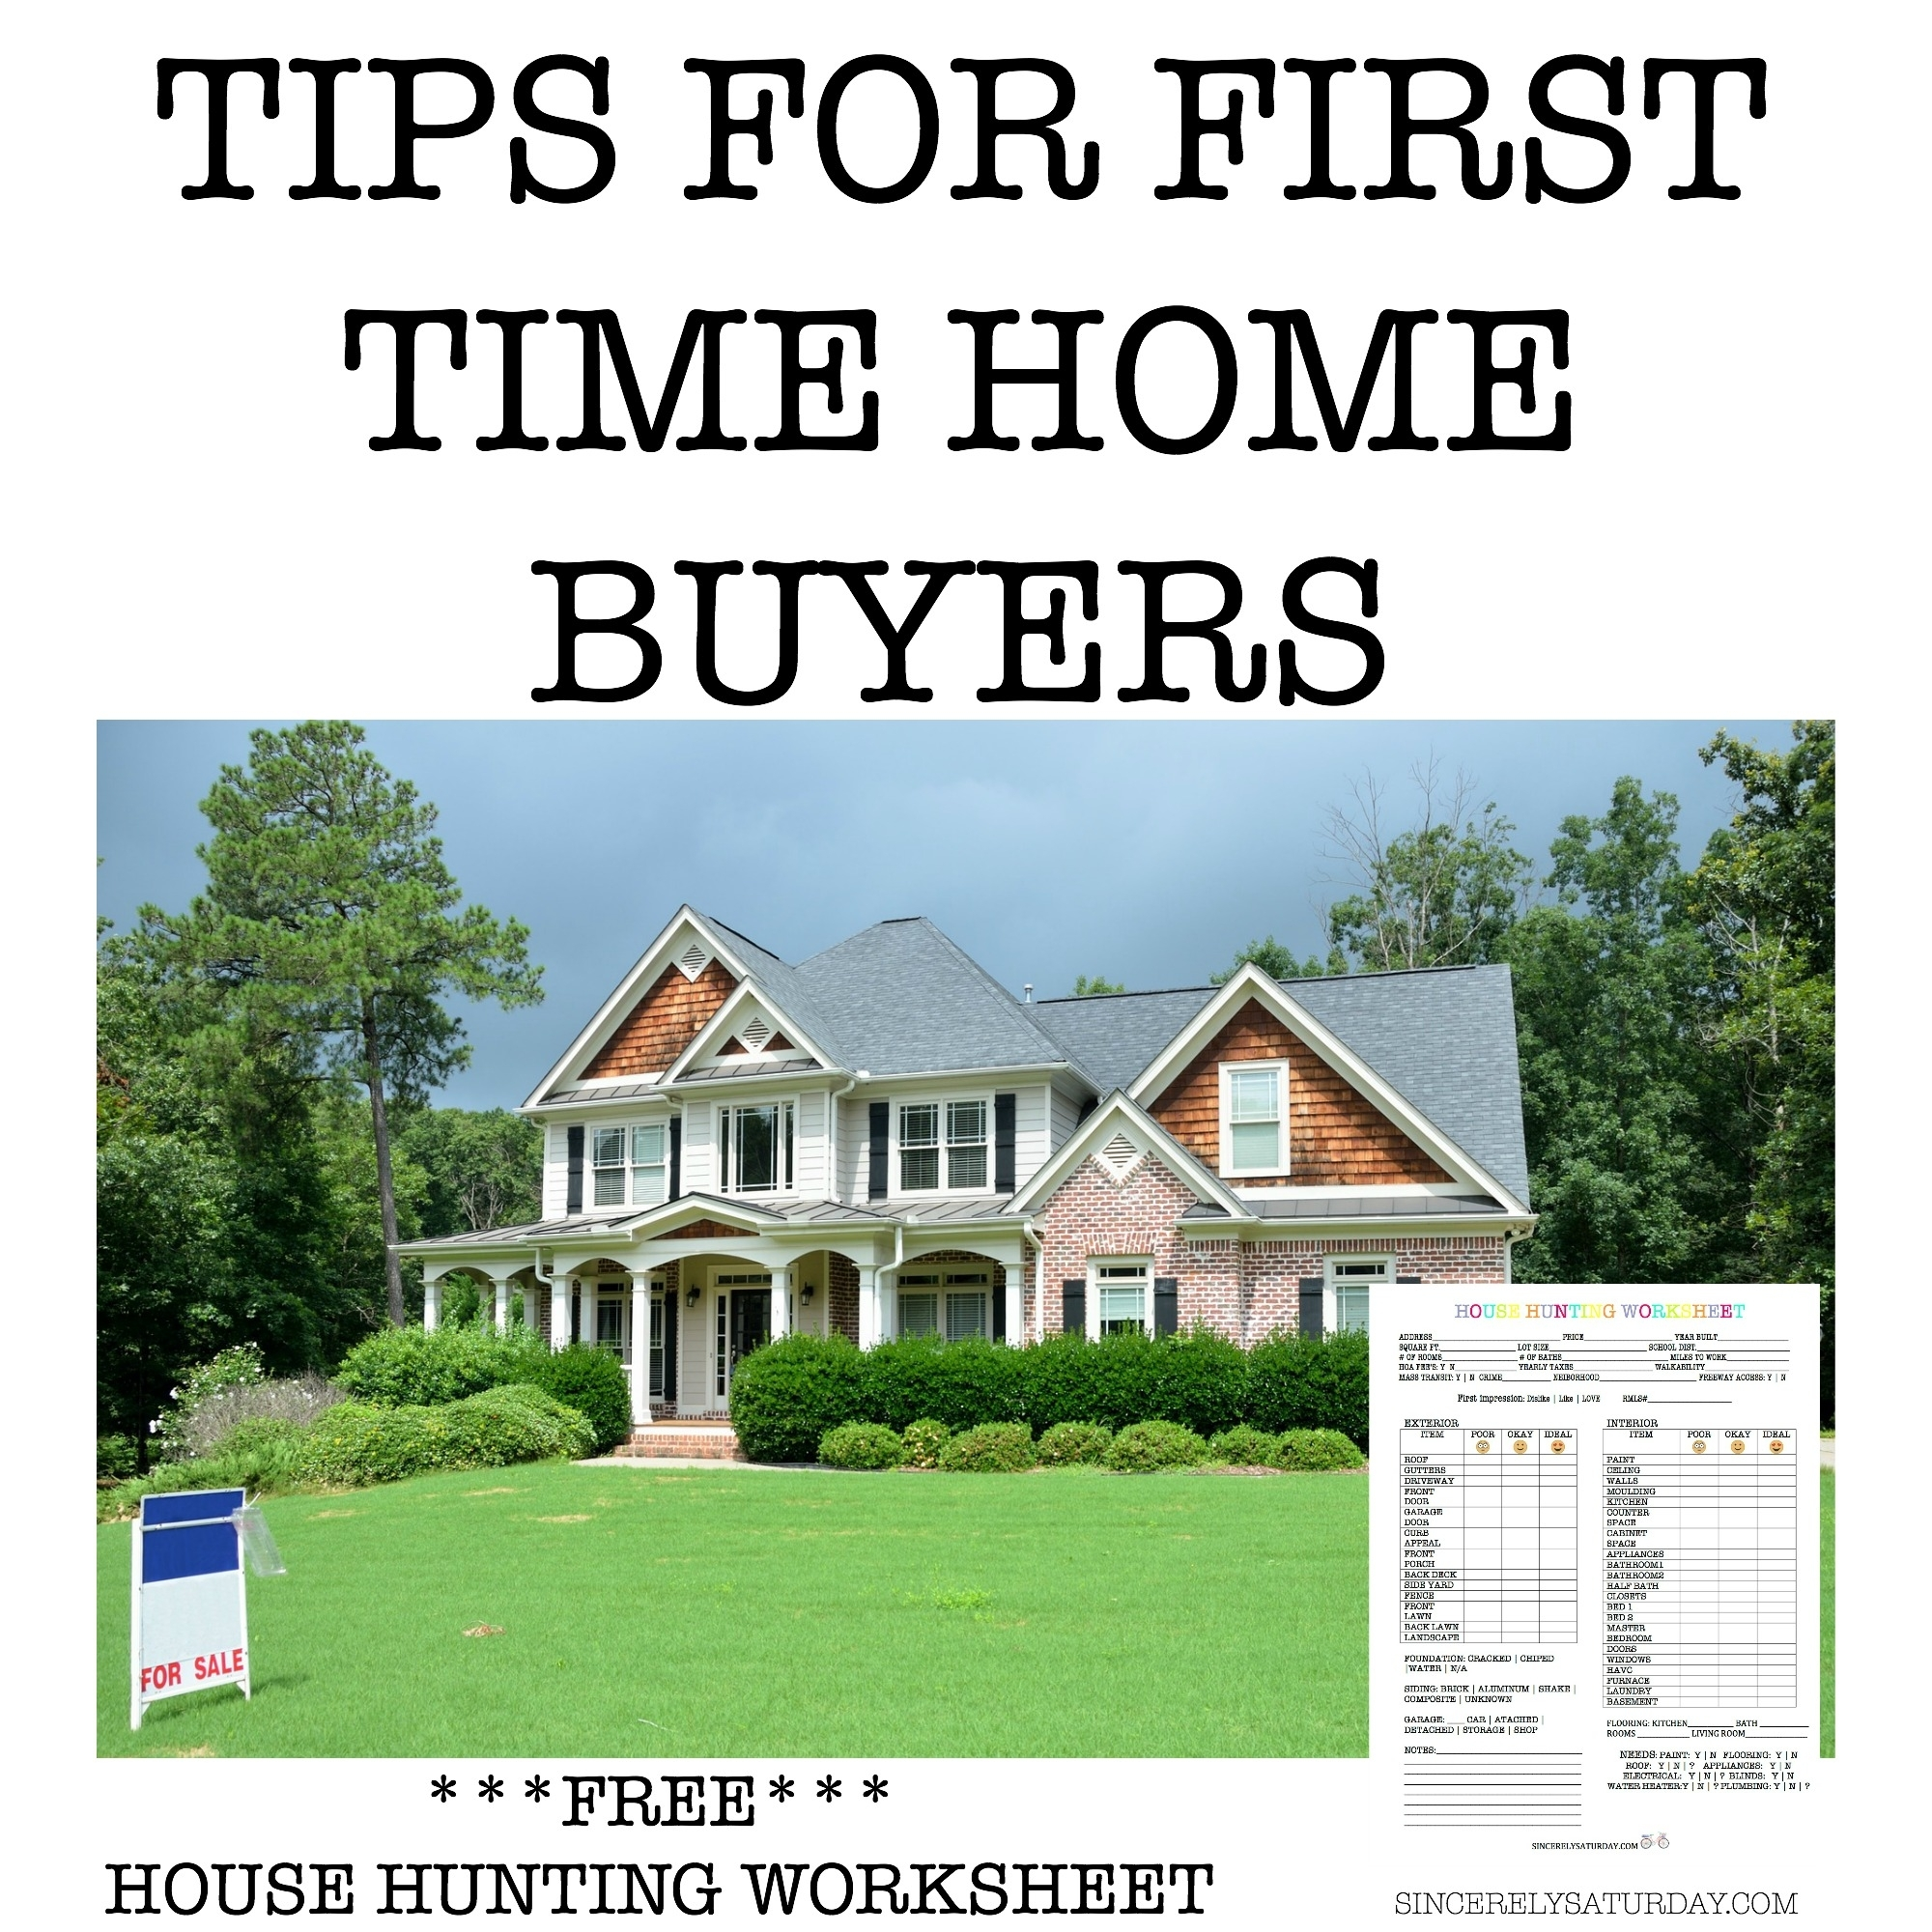 TIPS FOR FIRST TIME HOME BUYERS - FREE HOUSE HUNTING WORKSHEET ...